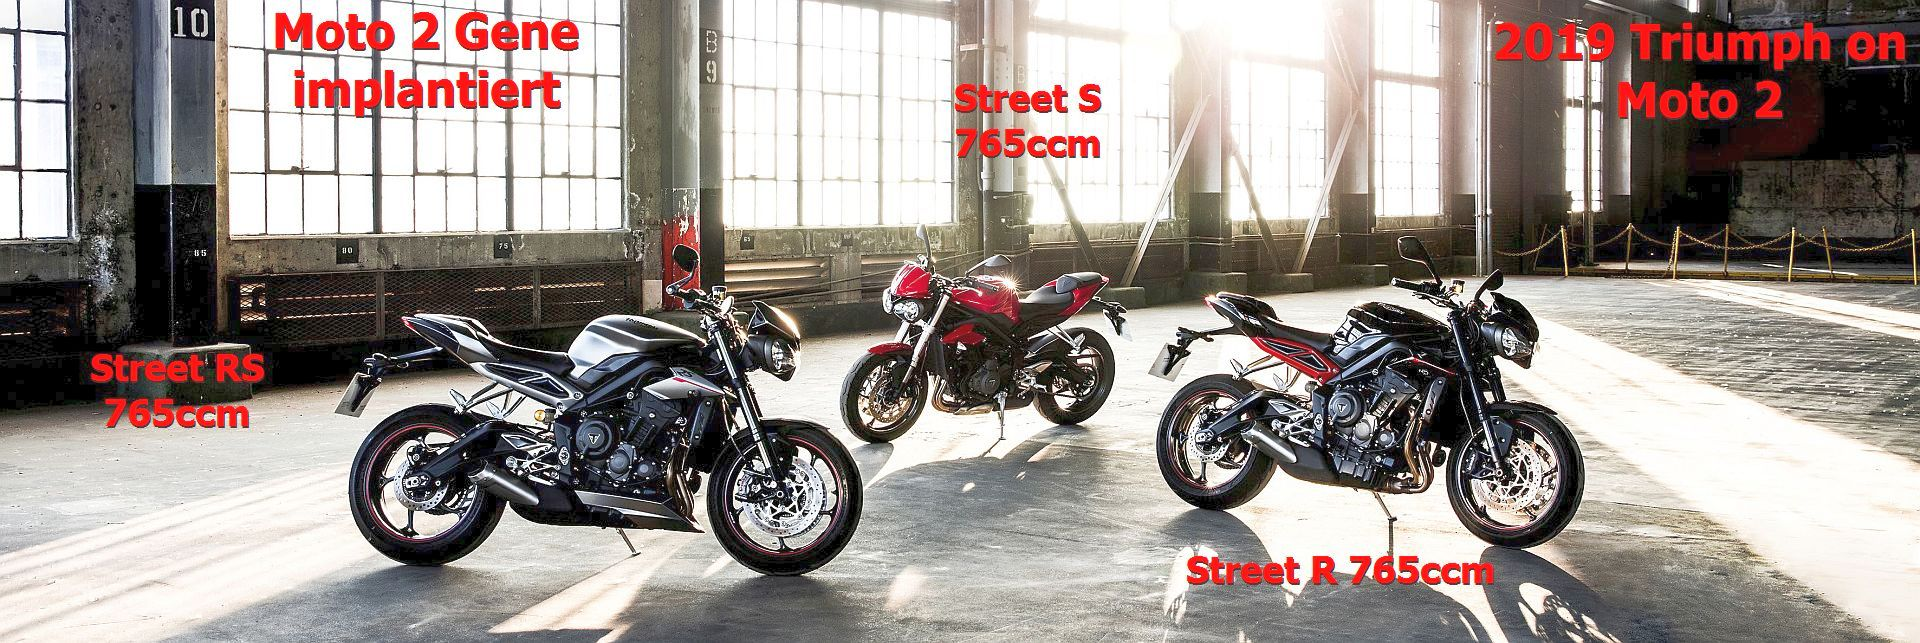 The New Street Triple 765 Family